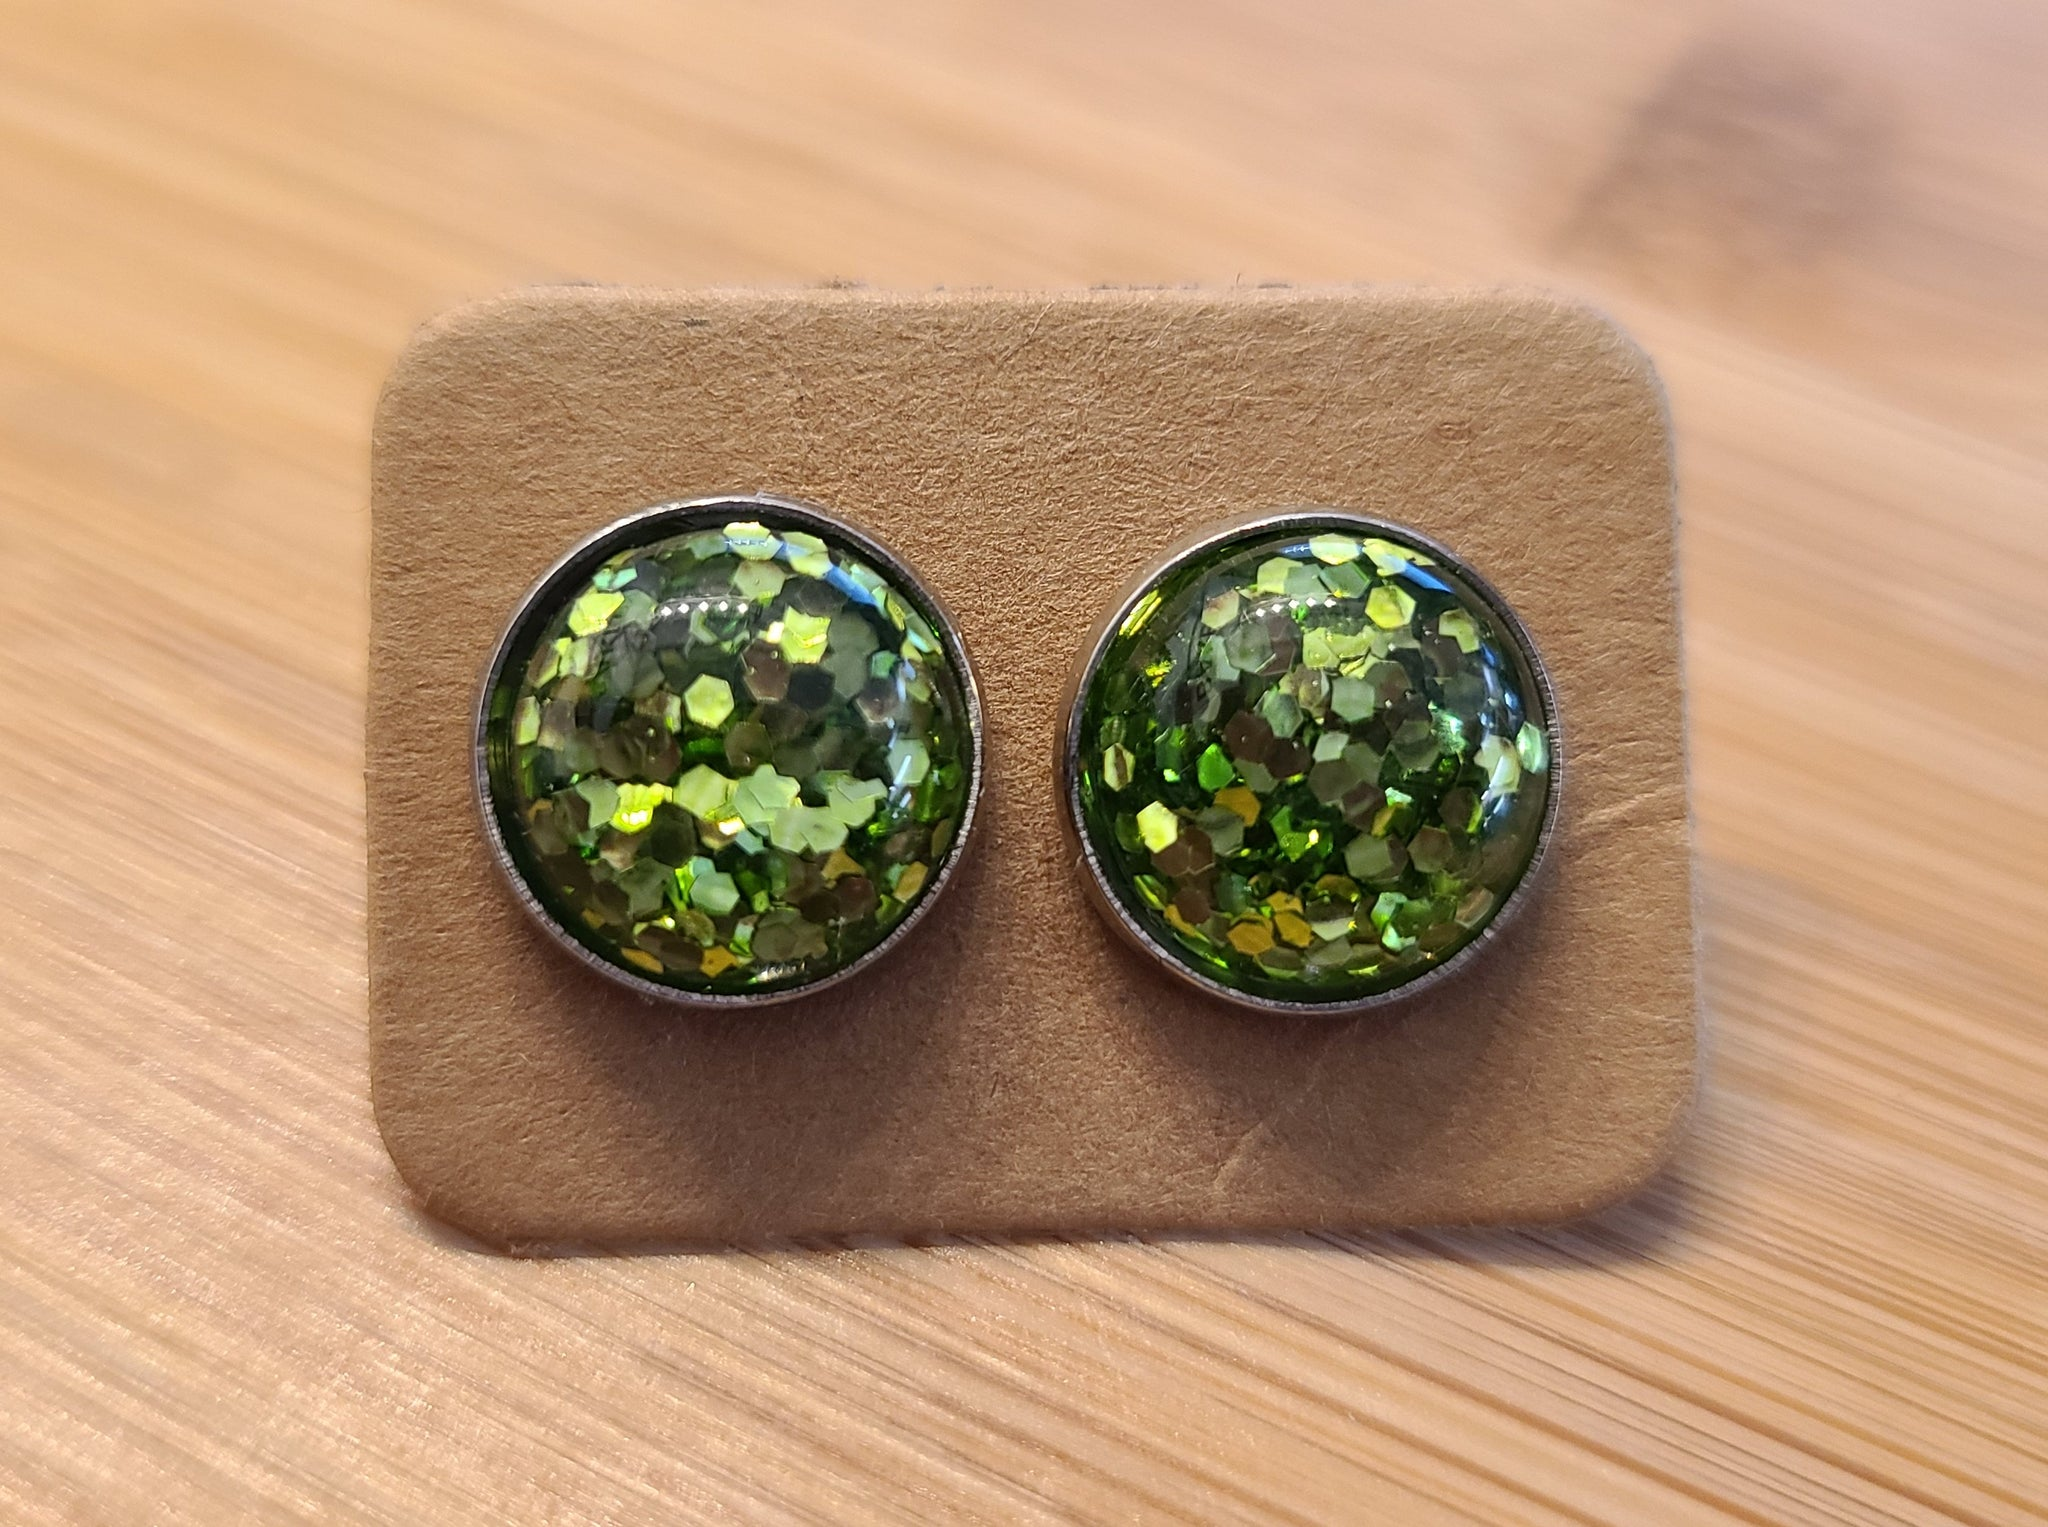 Green Glitter - 12mm druzy earrings